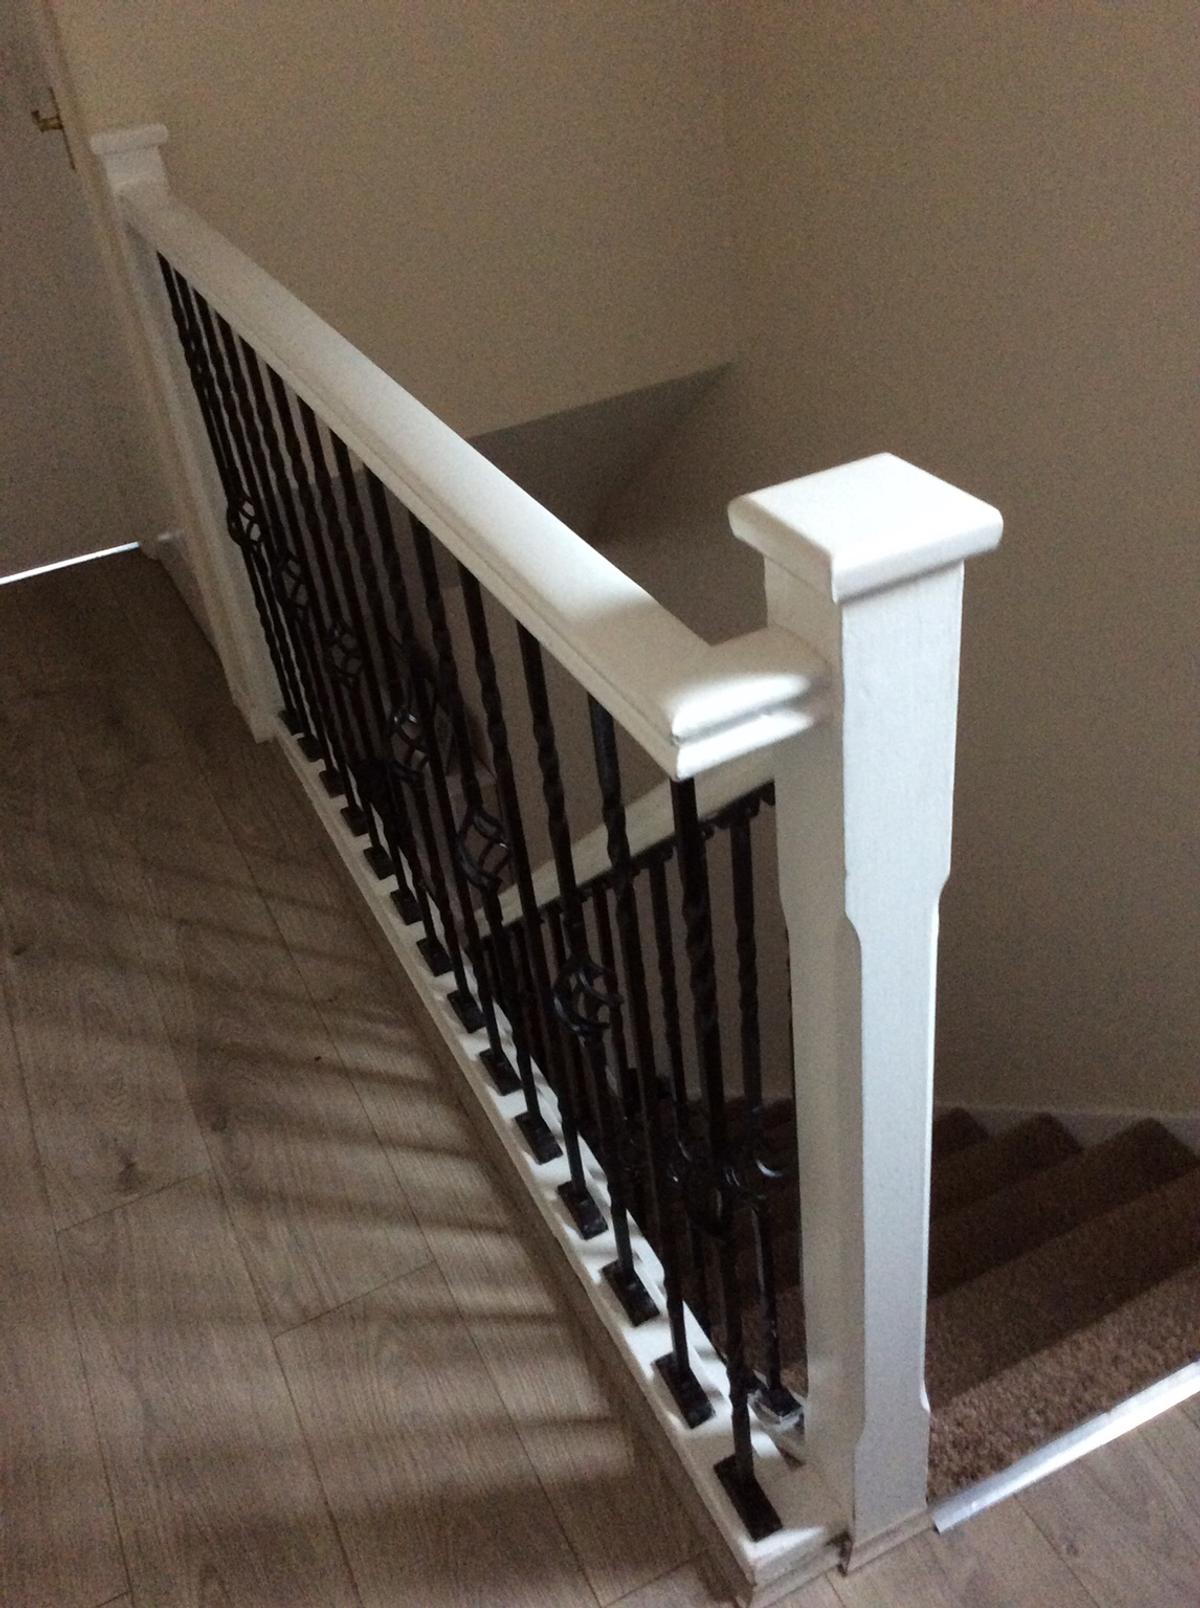 Stair Spindles Wrought Iron In L11 Liverpool For 100 00 For Sale Shpock